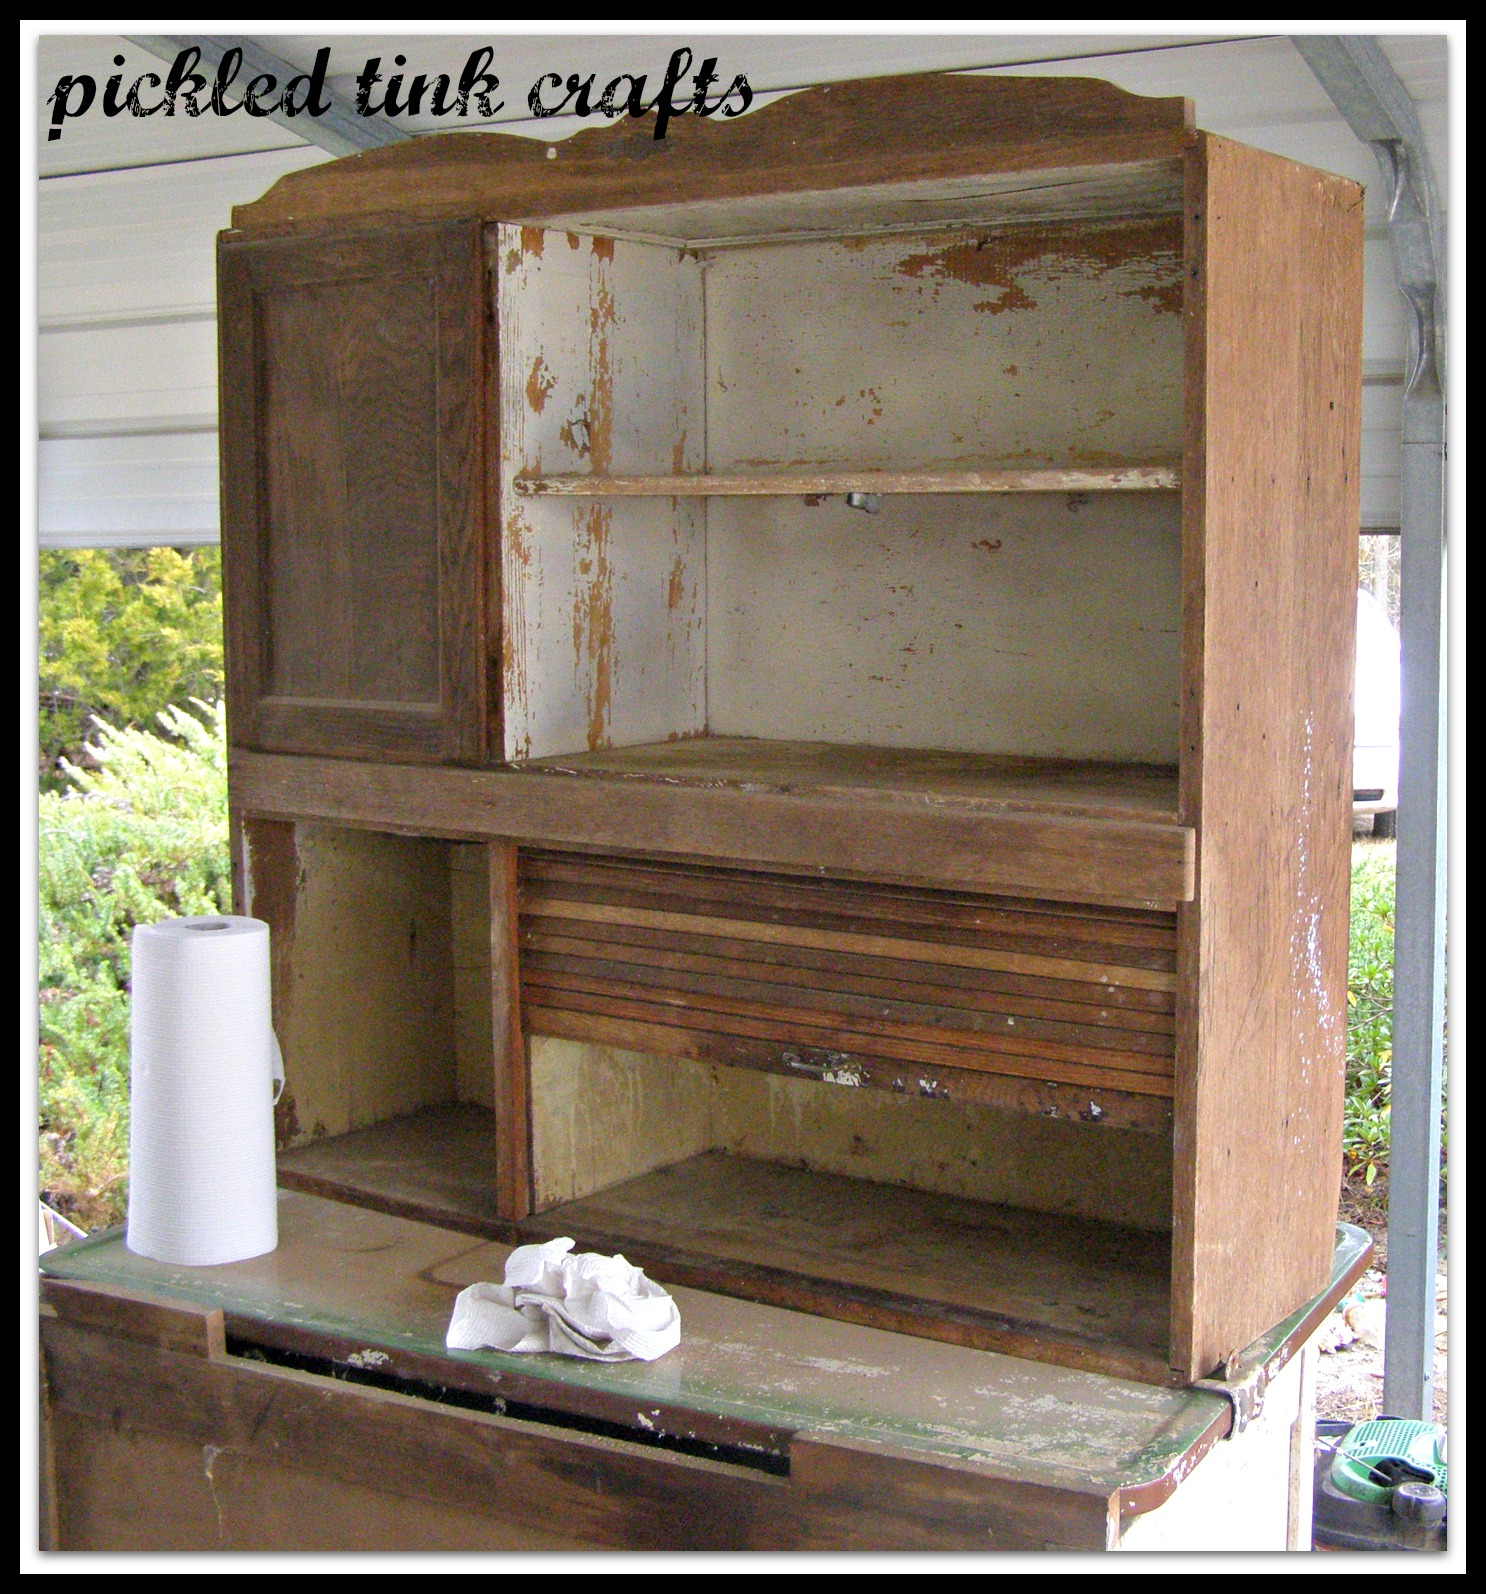 Pickled tink crafts old hoosier cabinet restore for Restoring old kitchen cabinets